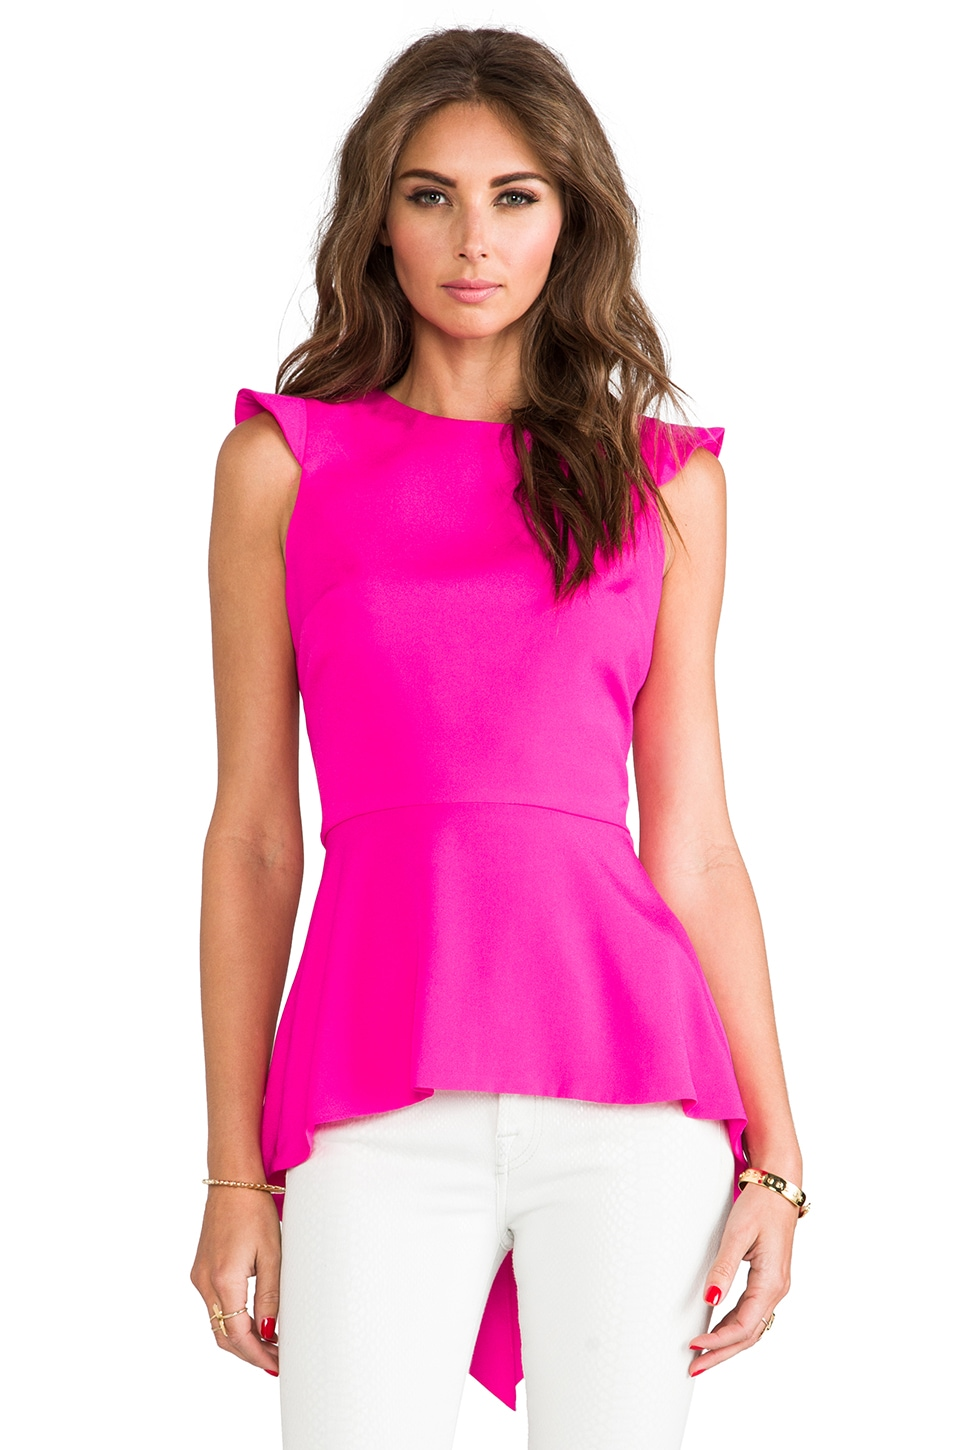 Naven Armor Blouse in Pop Pink